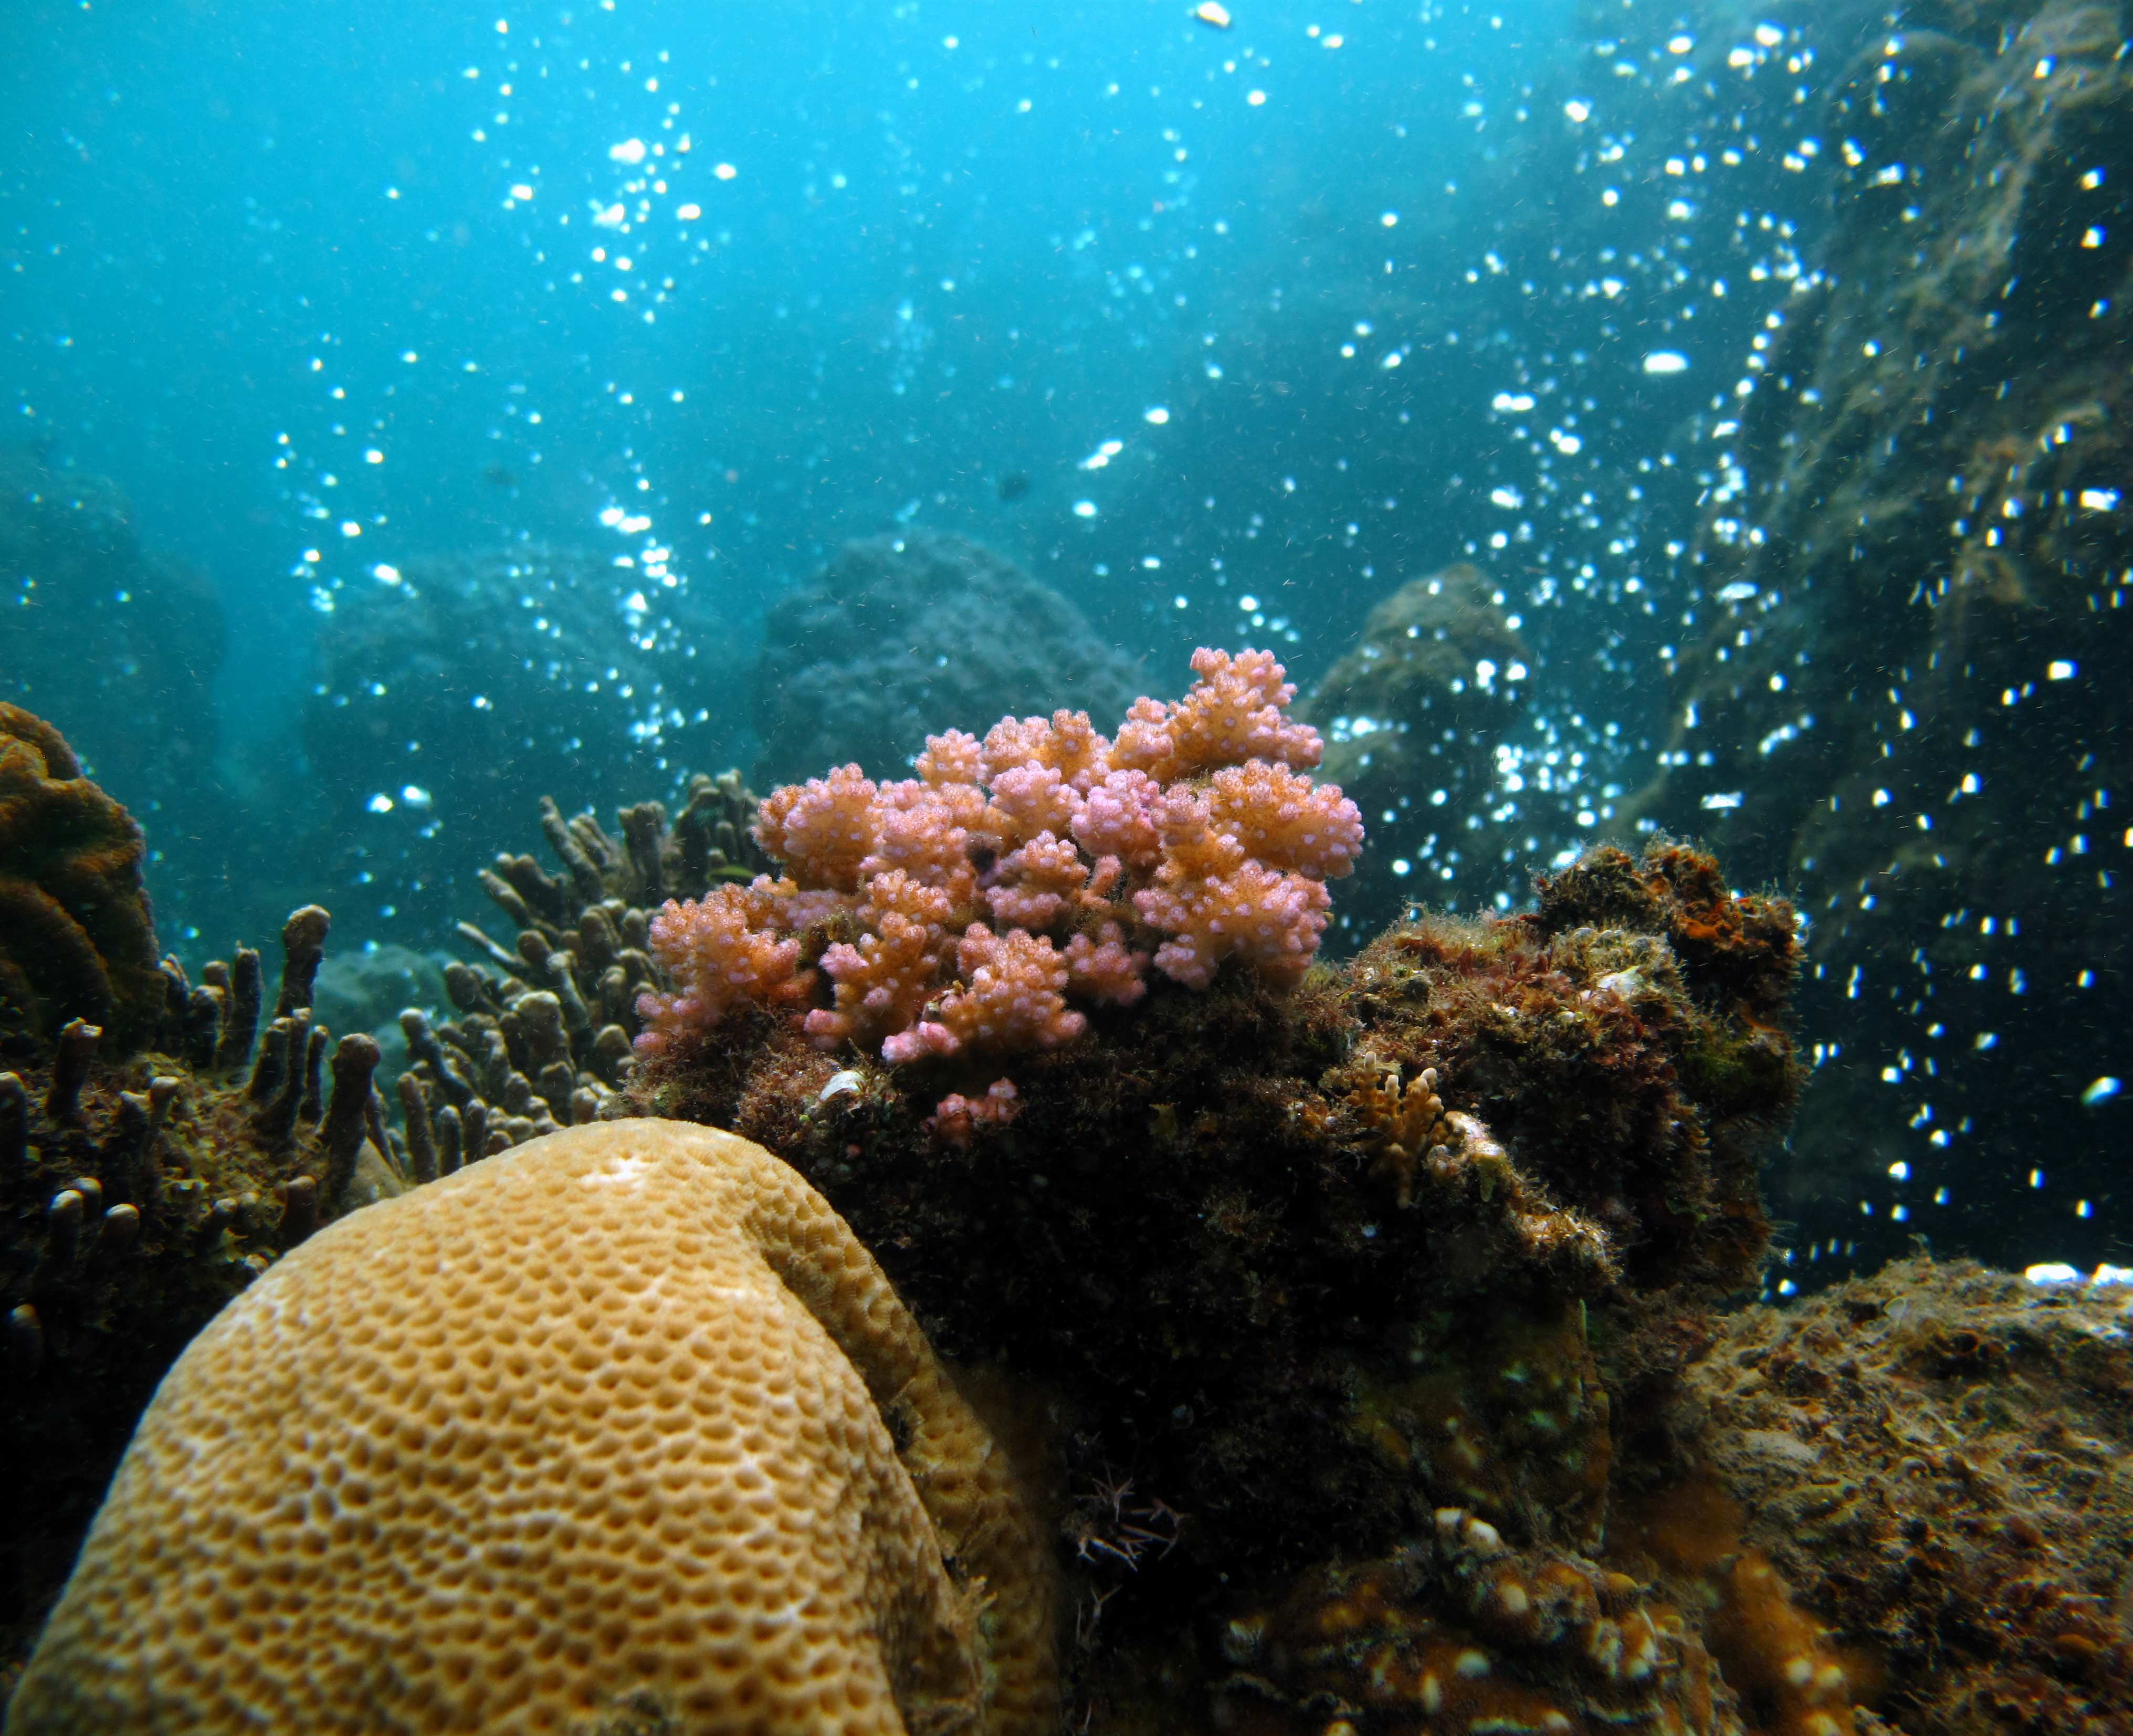 Branching corals, because of their more fragile structure, struggle to live in acidified waters<div class='credit'><strong>Credit:</strong> Branching corals, because of their more fragile structure, struggle to live in acidified waters</div>